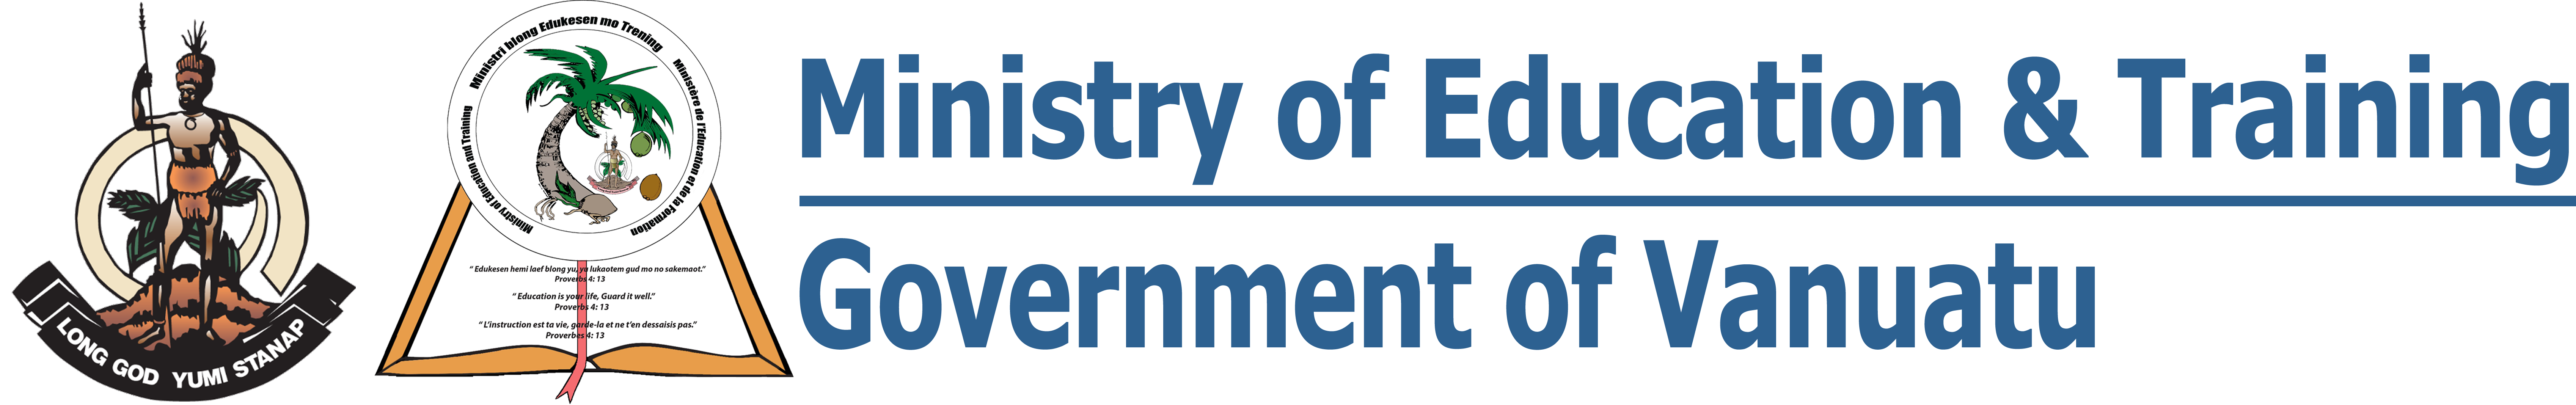 Ministry of Education and Training - Examinations Results